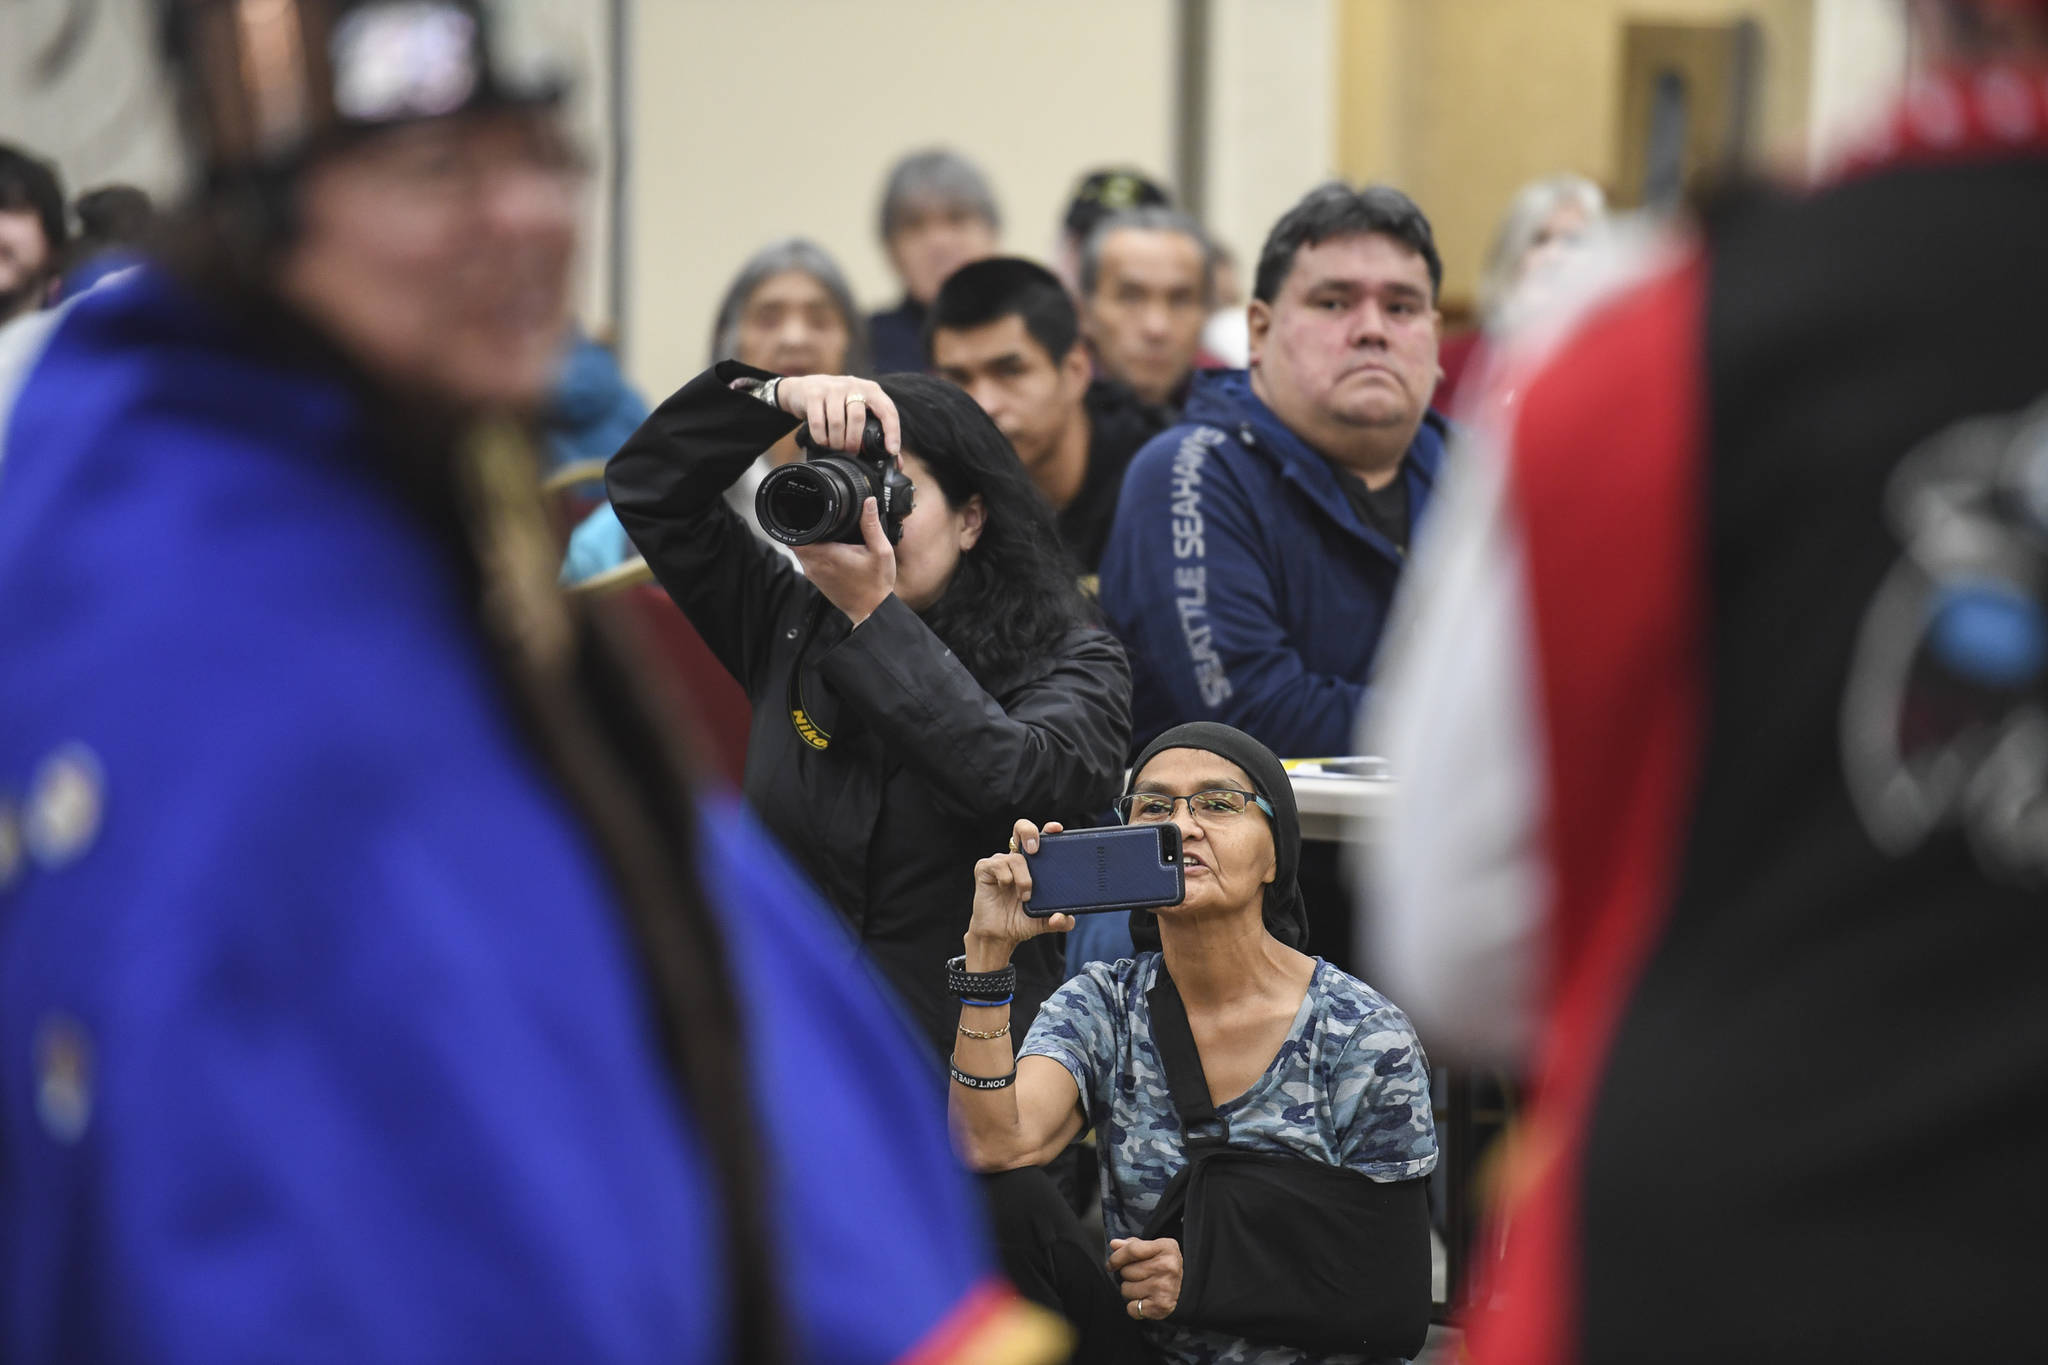 Juneau residents watch the Yaaw Tei Yi Dance Group perform during the Southeast Alaska Native Veteran's Veterans Day luncheon at the Elizabeth Peratrovich Hall on Monday, Nov. 11, 2019. (Michael Penn | Juneau Empire)